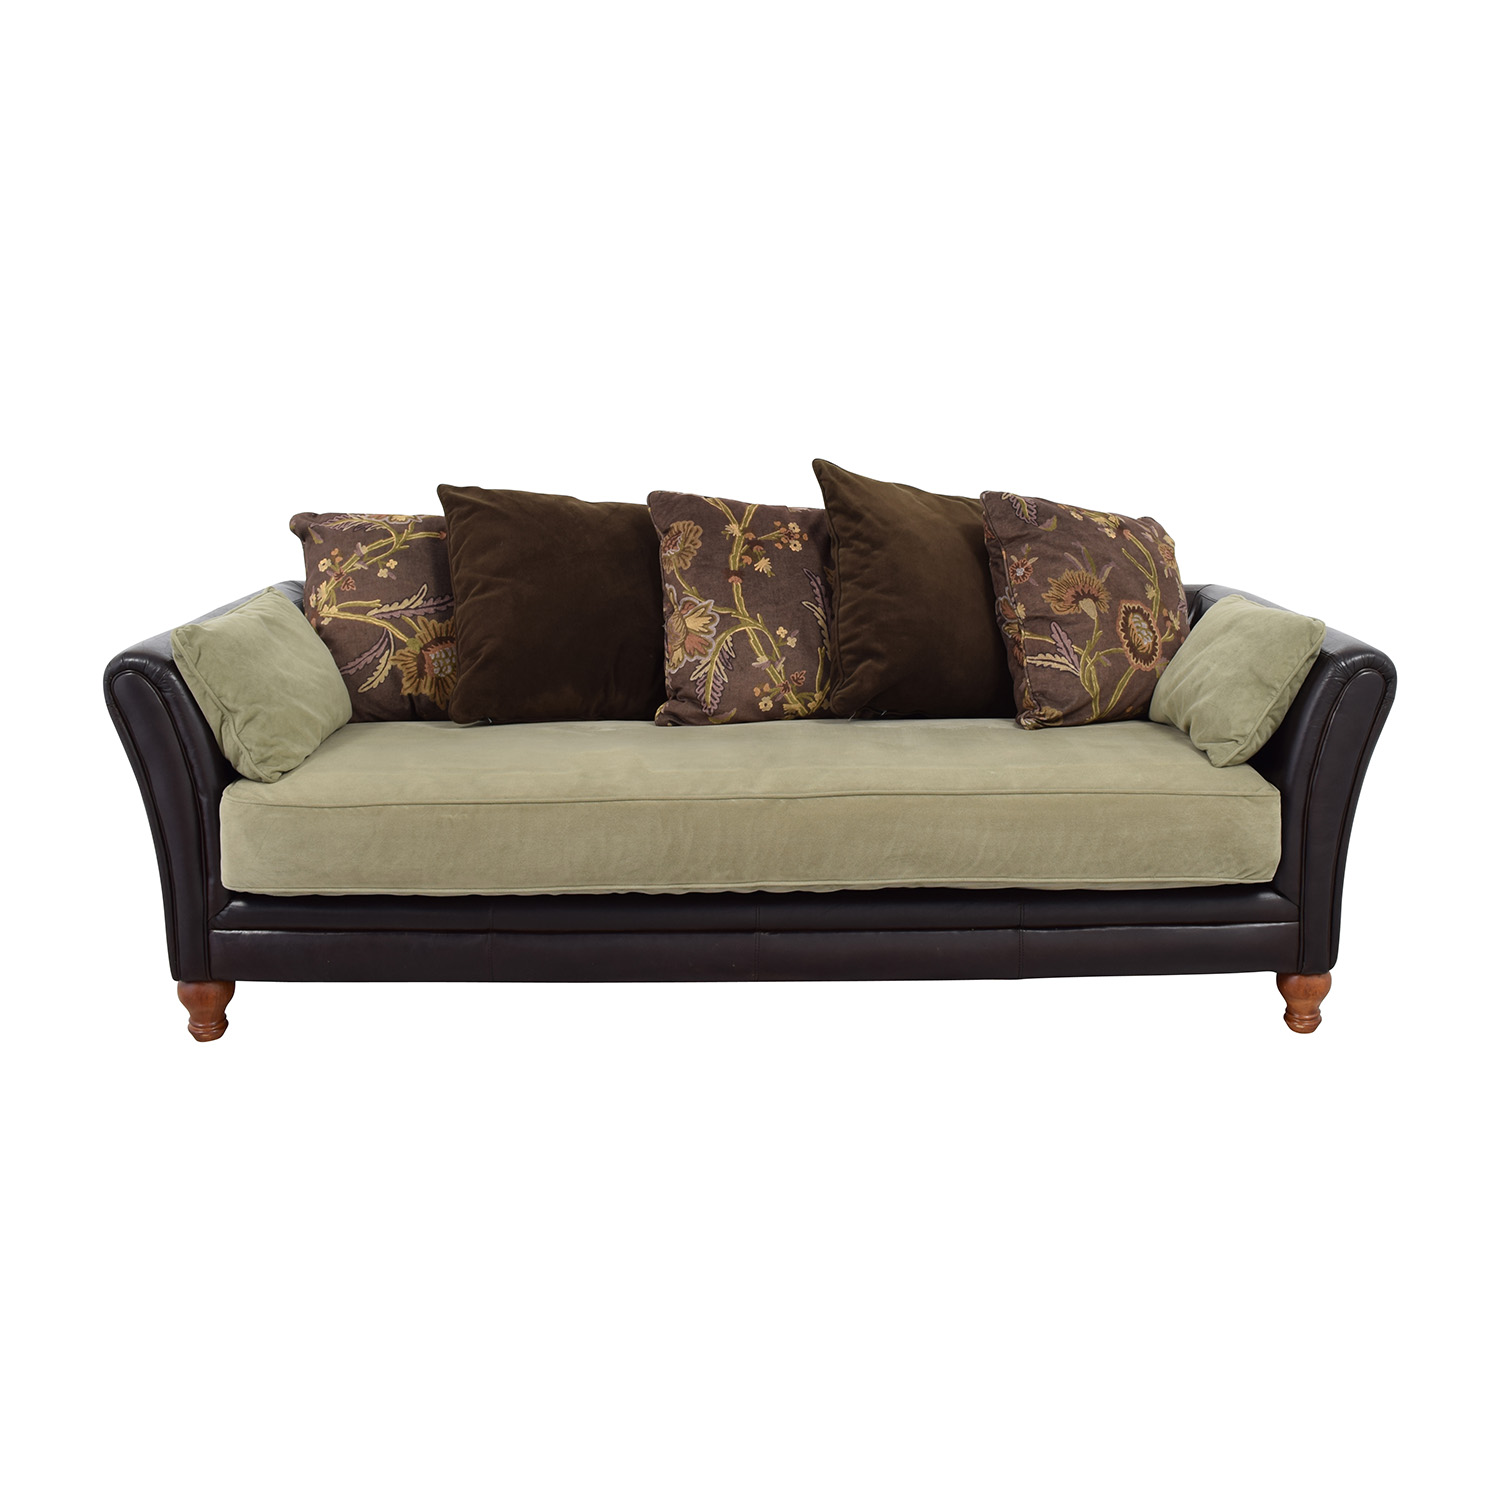 Leather and Suede Three-Seat Sofa Classic Sofas